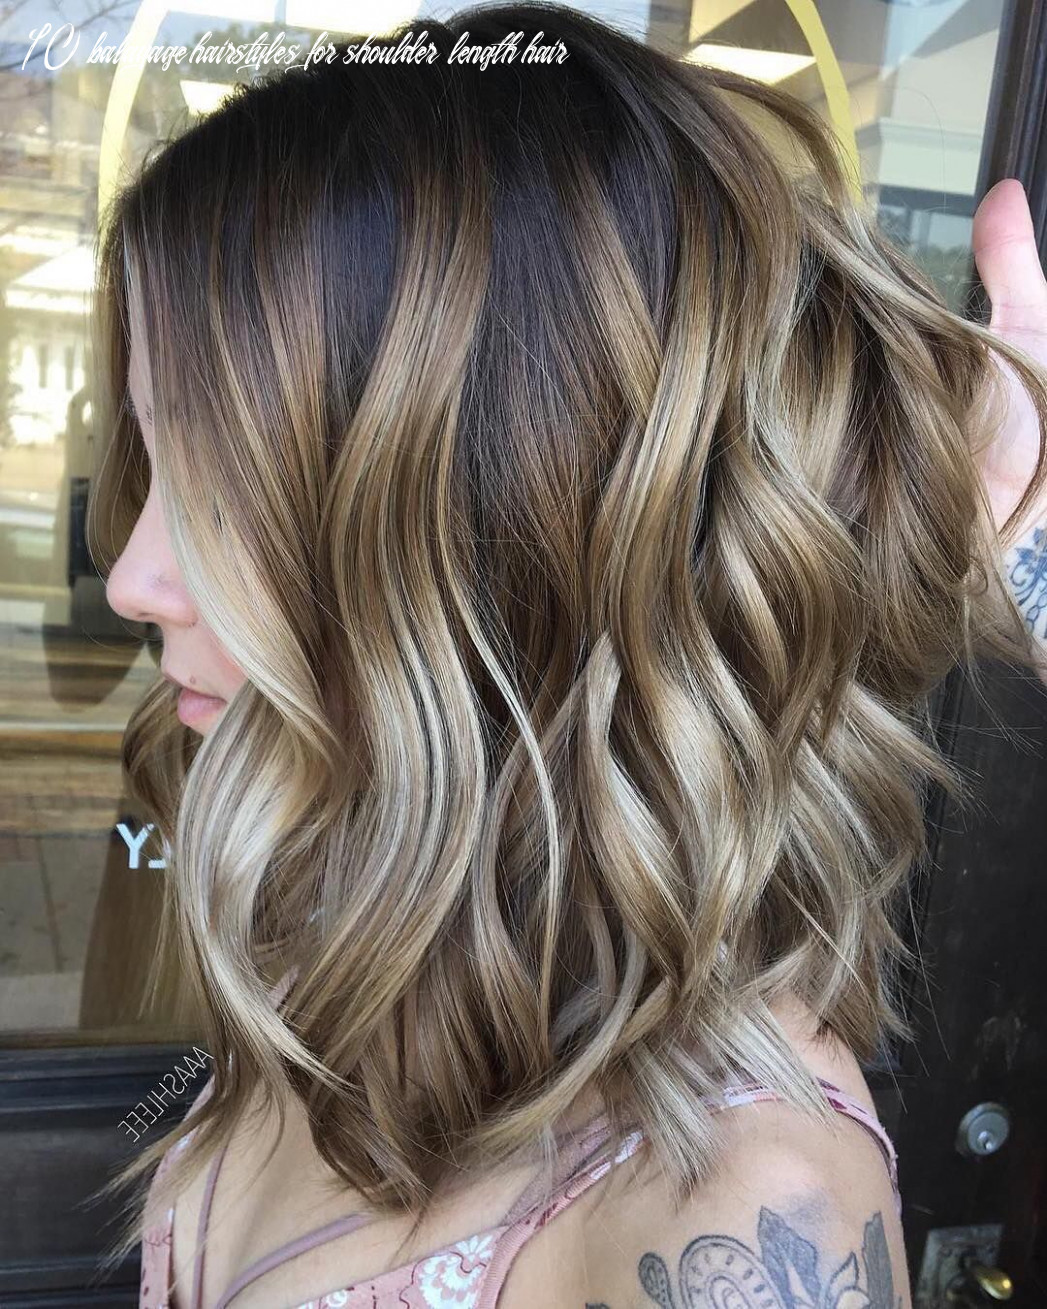 9 ombre balayage hairstyles for medium length hair (popular